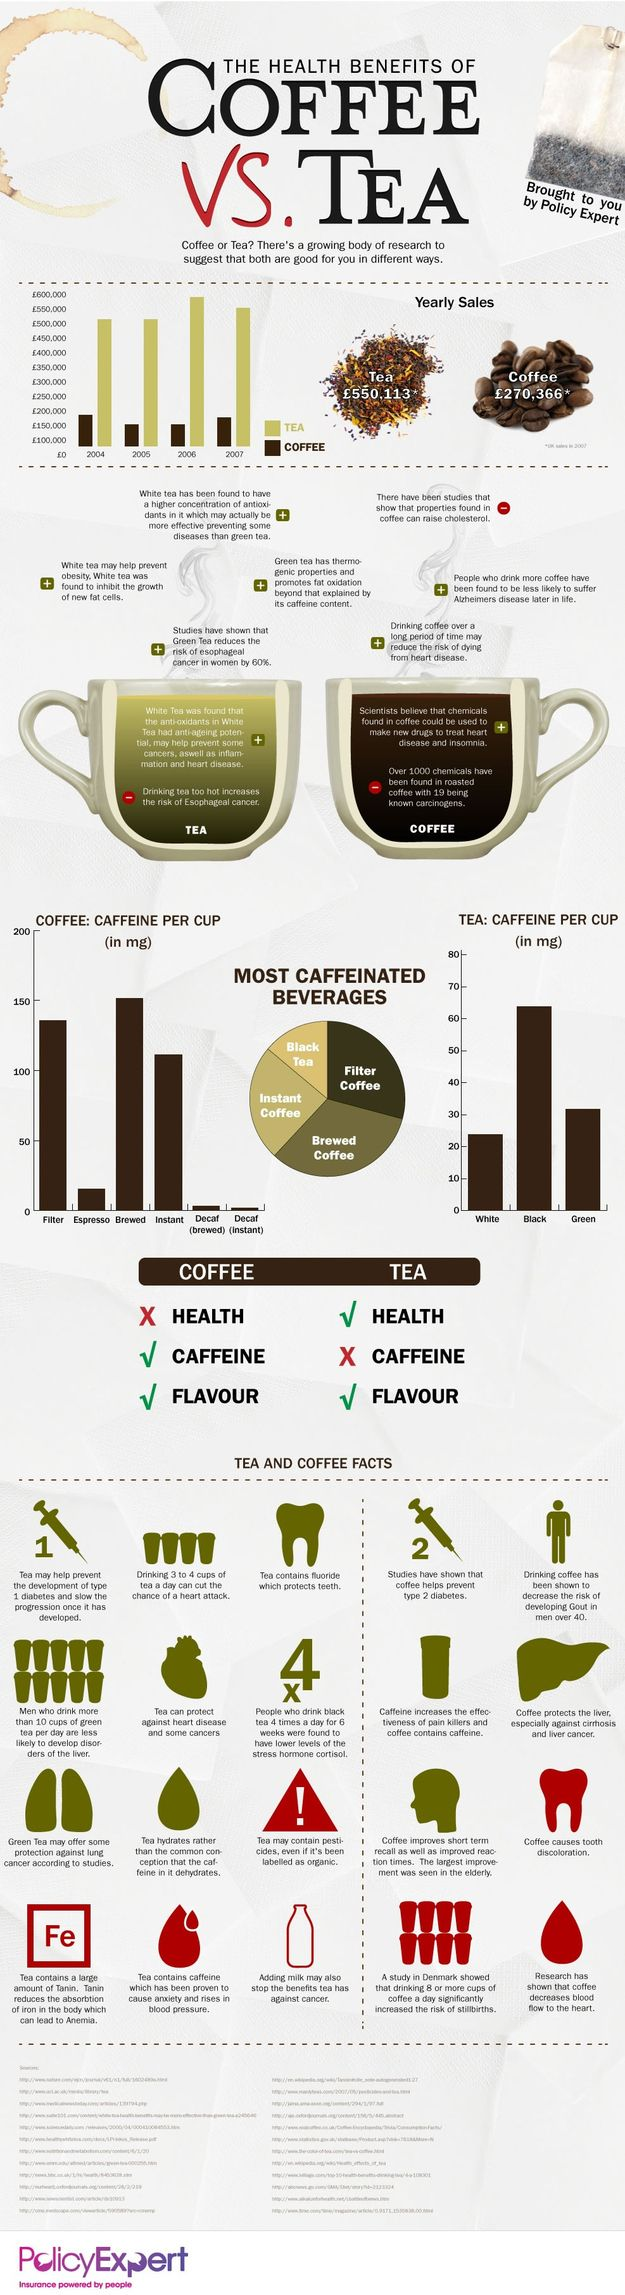 Which is healthier, coffee or tea?